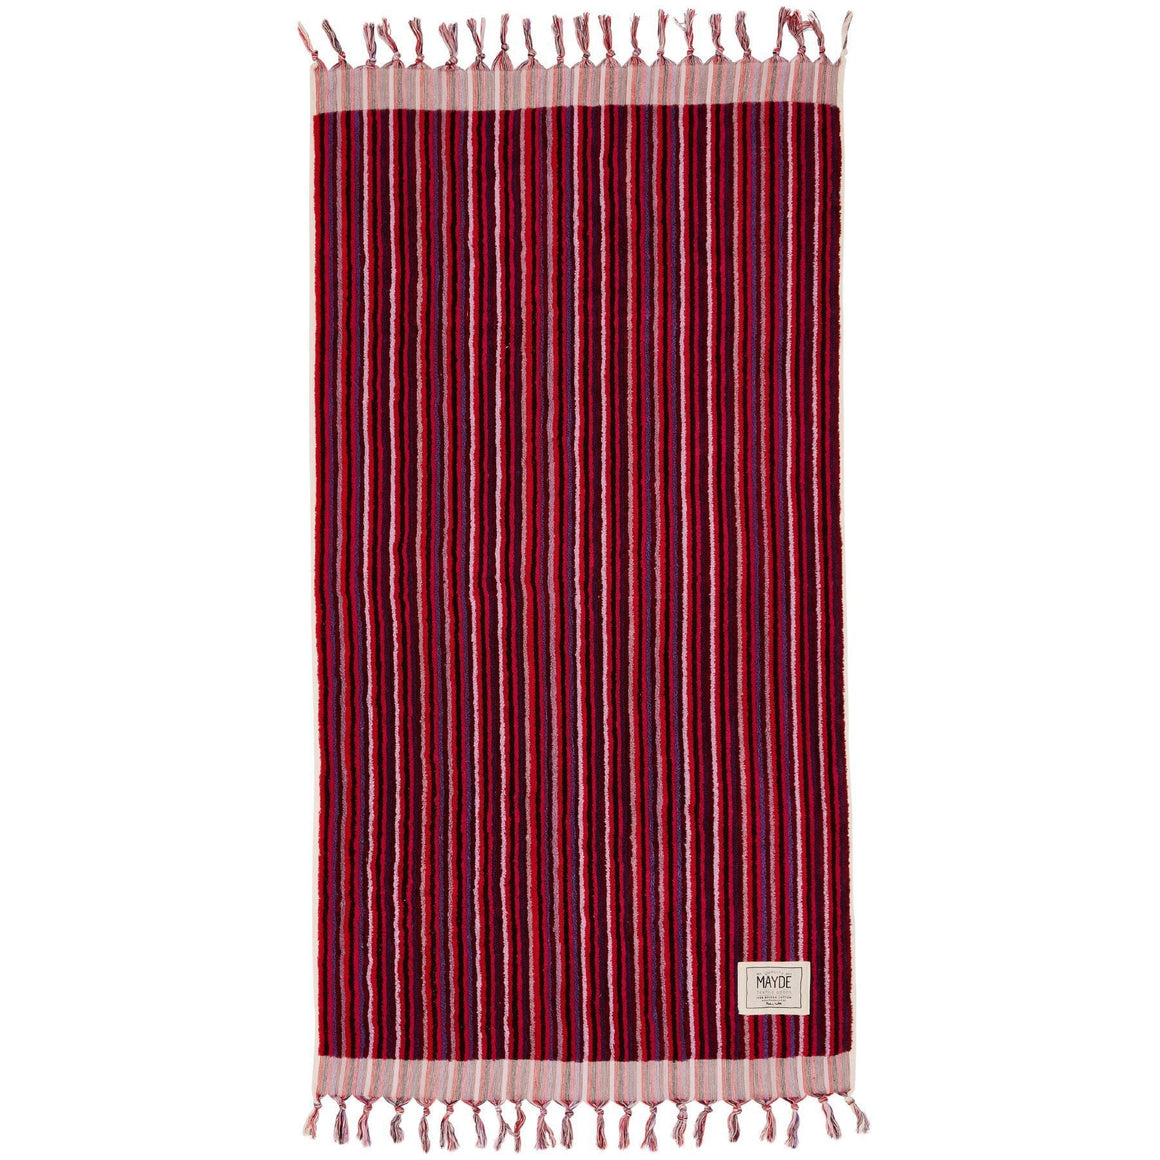 Summercloud Seasons Towel - Autumn